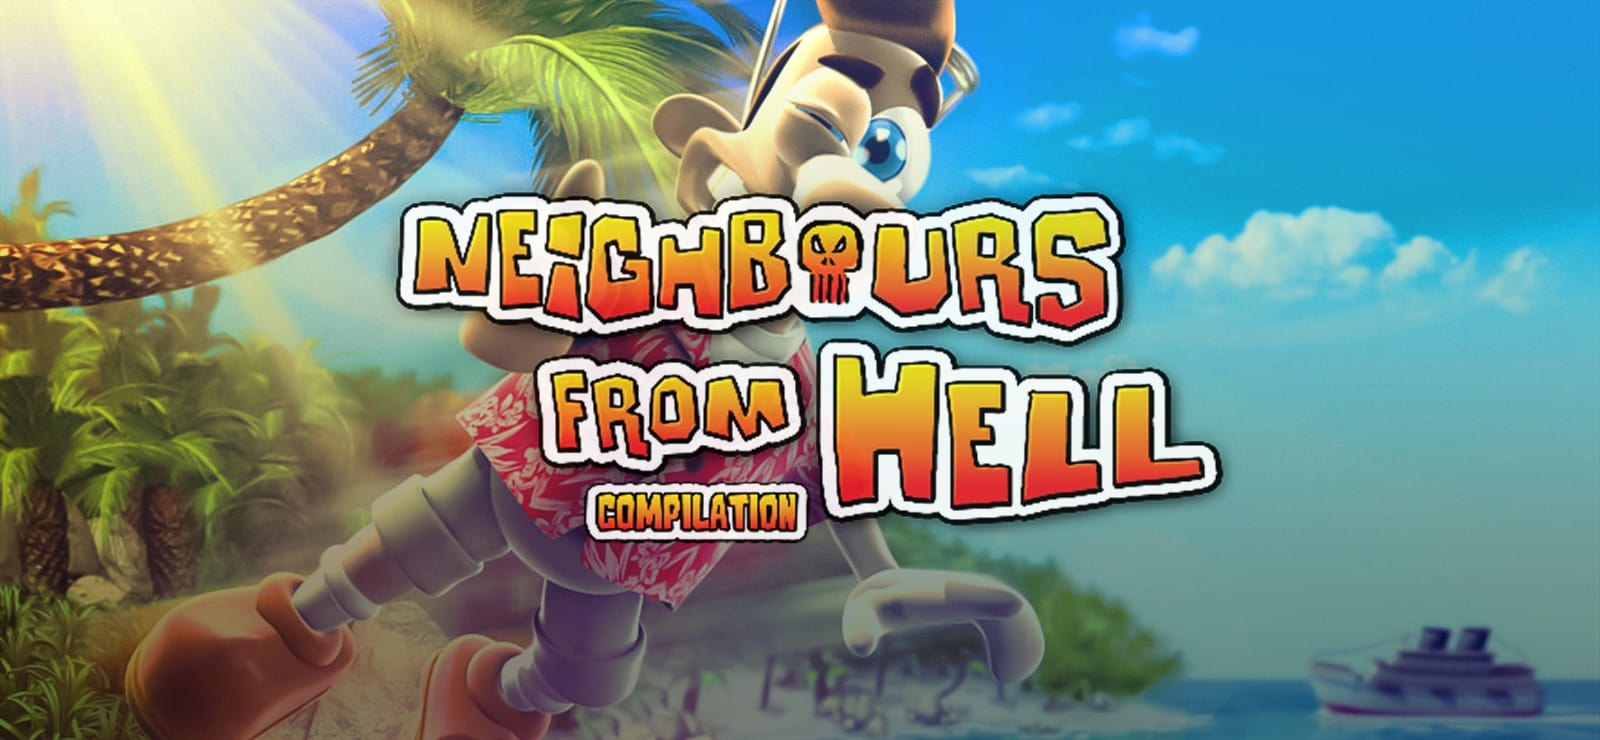 Neighbours from Hell Compilation - GOG